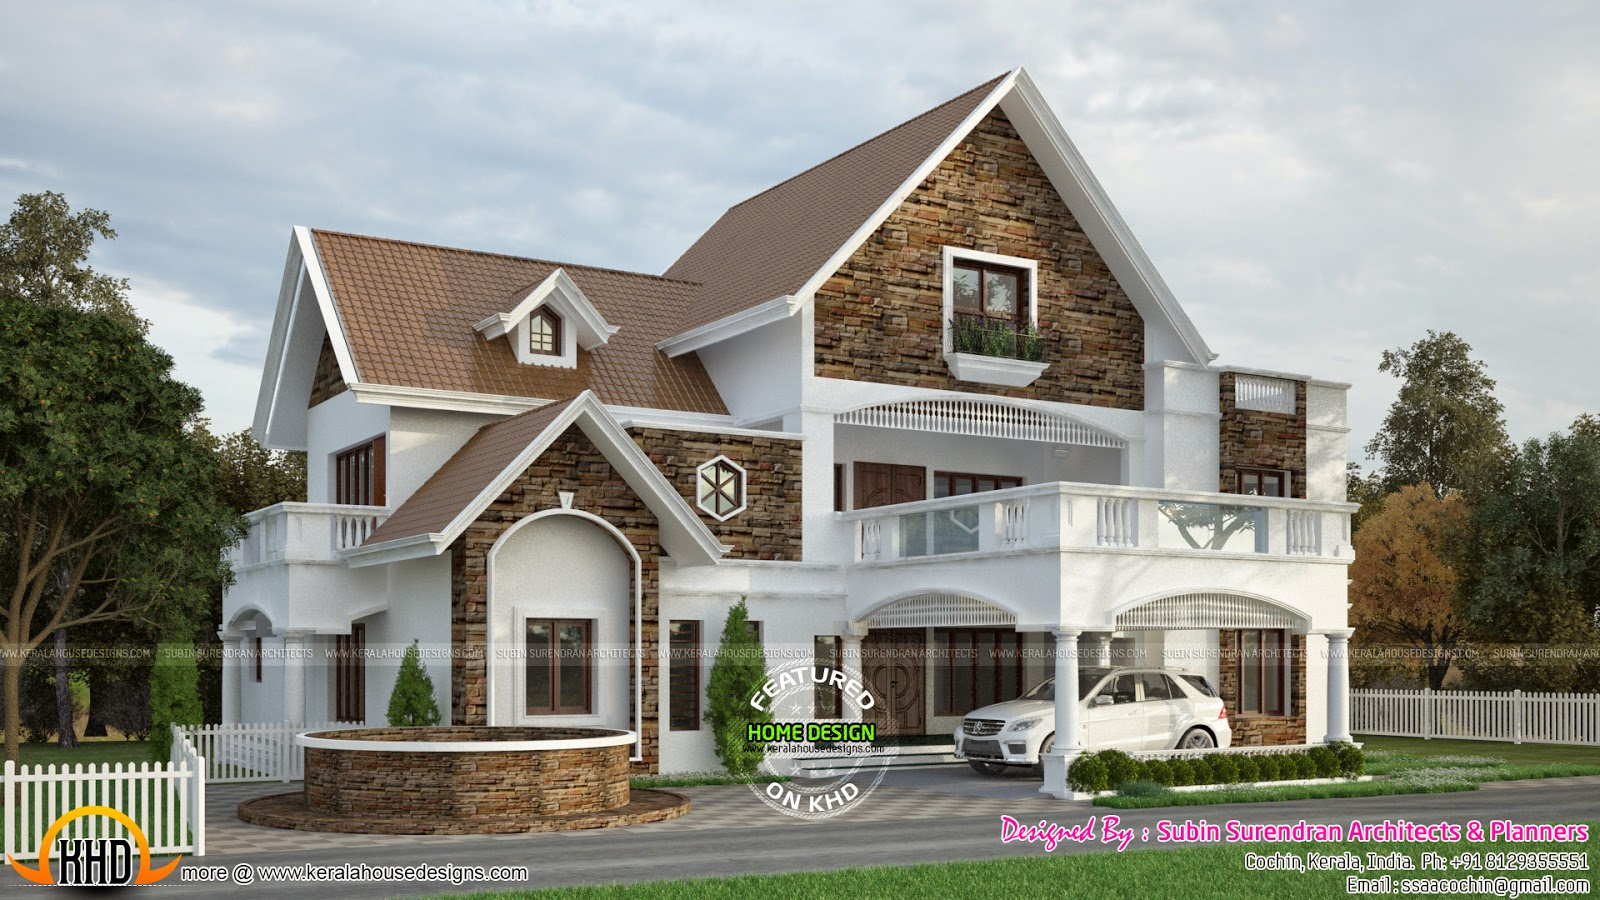 Sloped Roof Elegant Home Design Kerala Home Design Bloglovinu0027